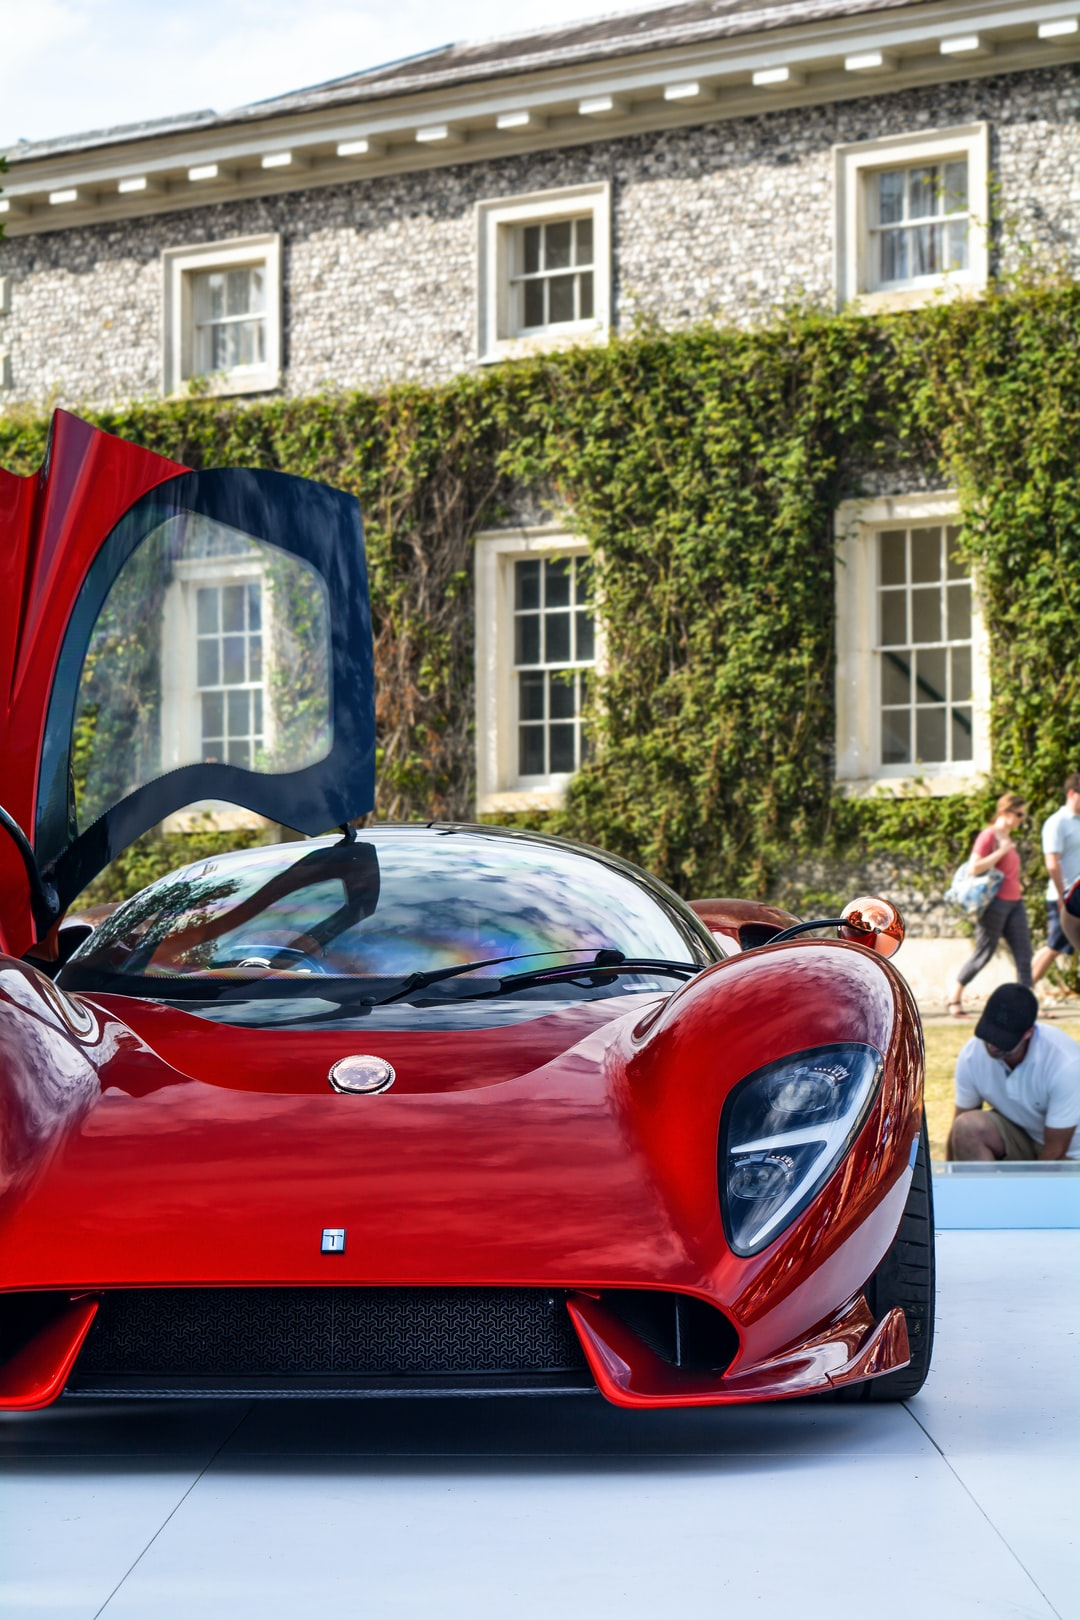 The De Tomaso P72 at Goodwood Festival of Speed 2019...